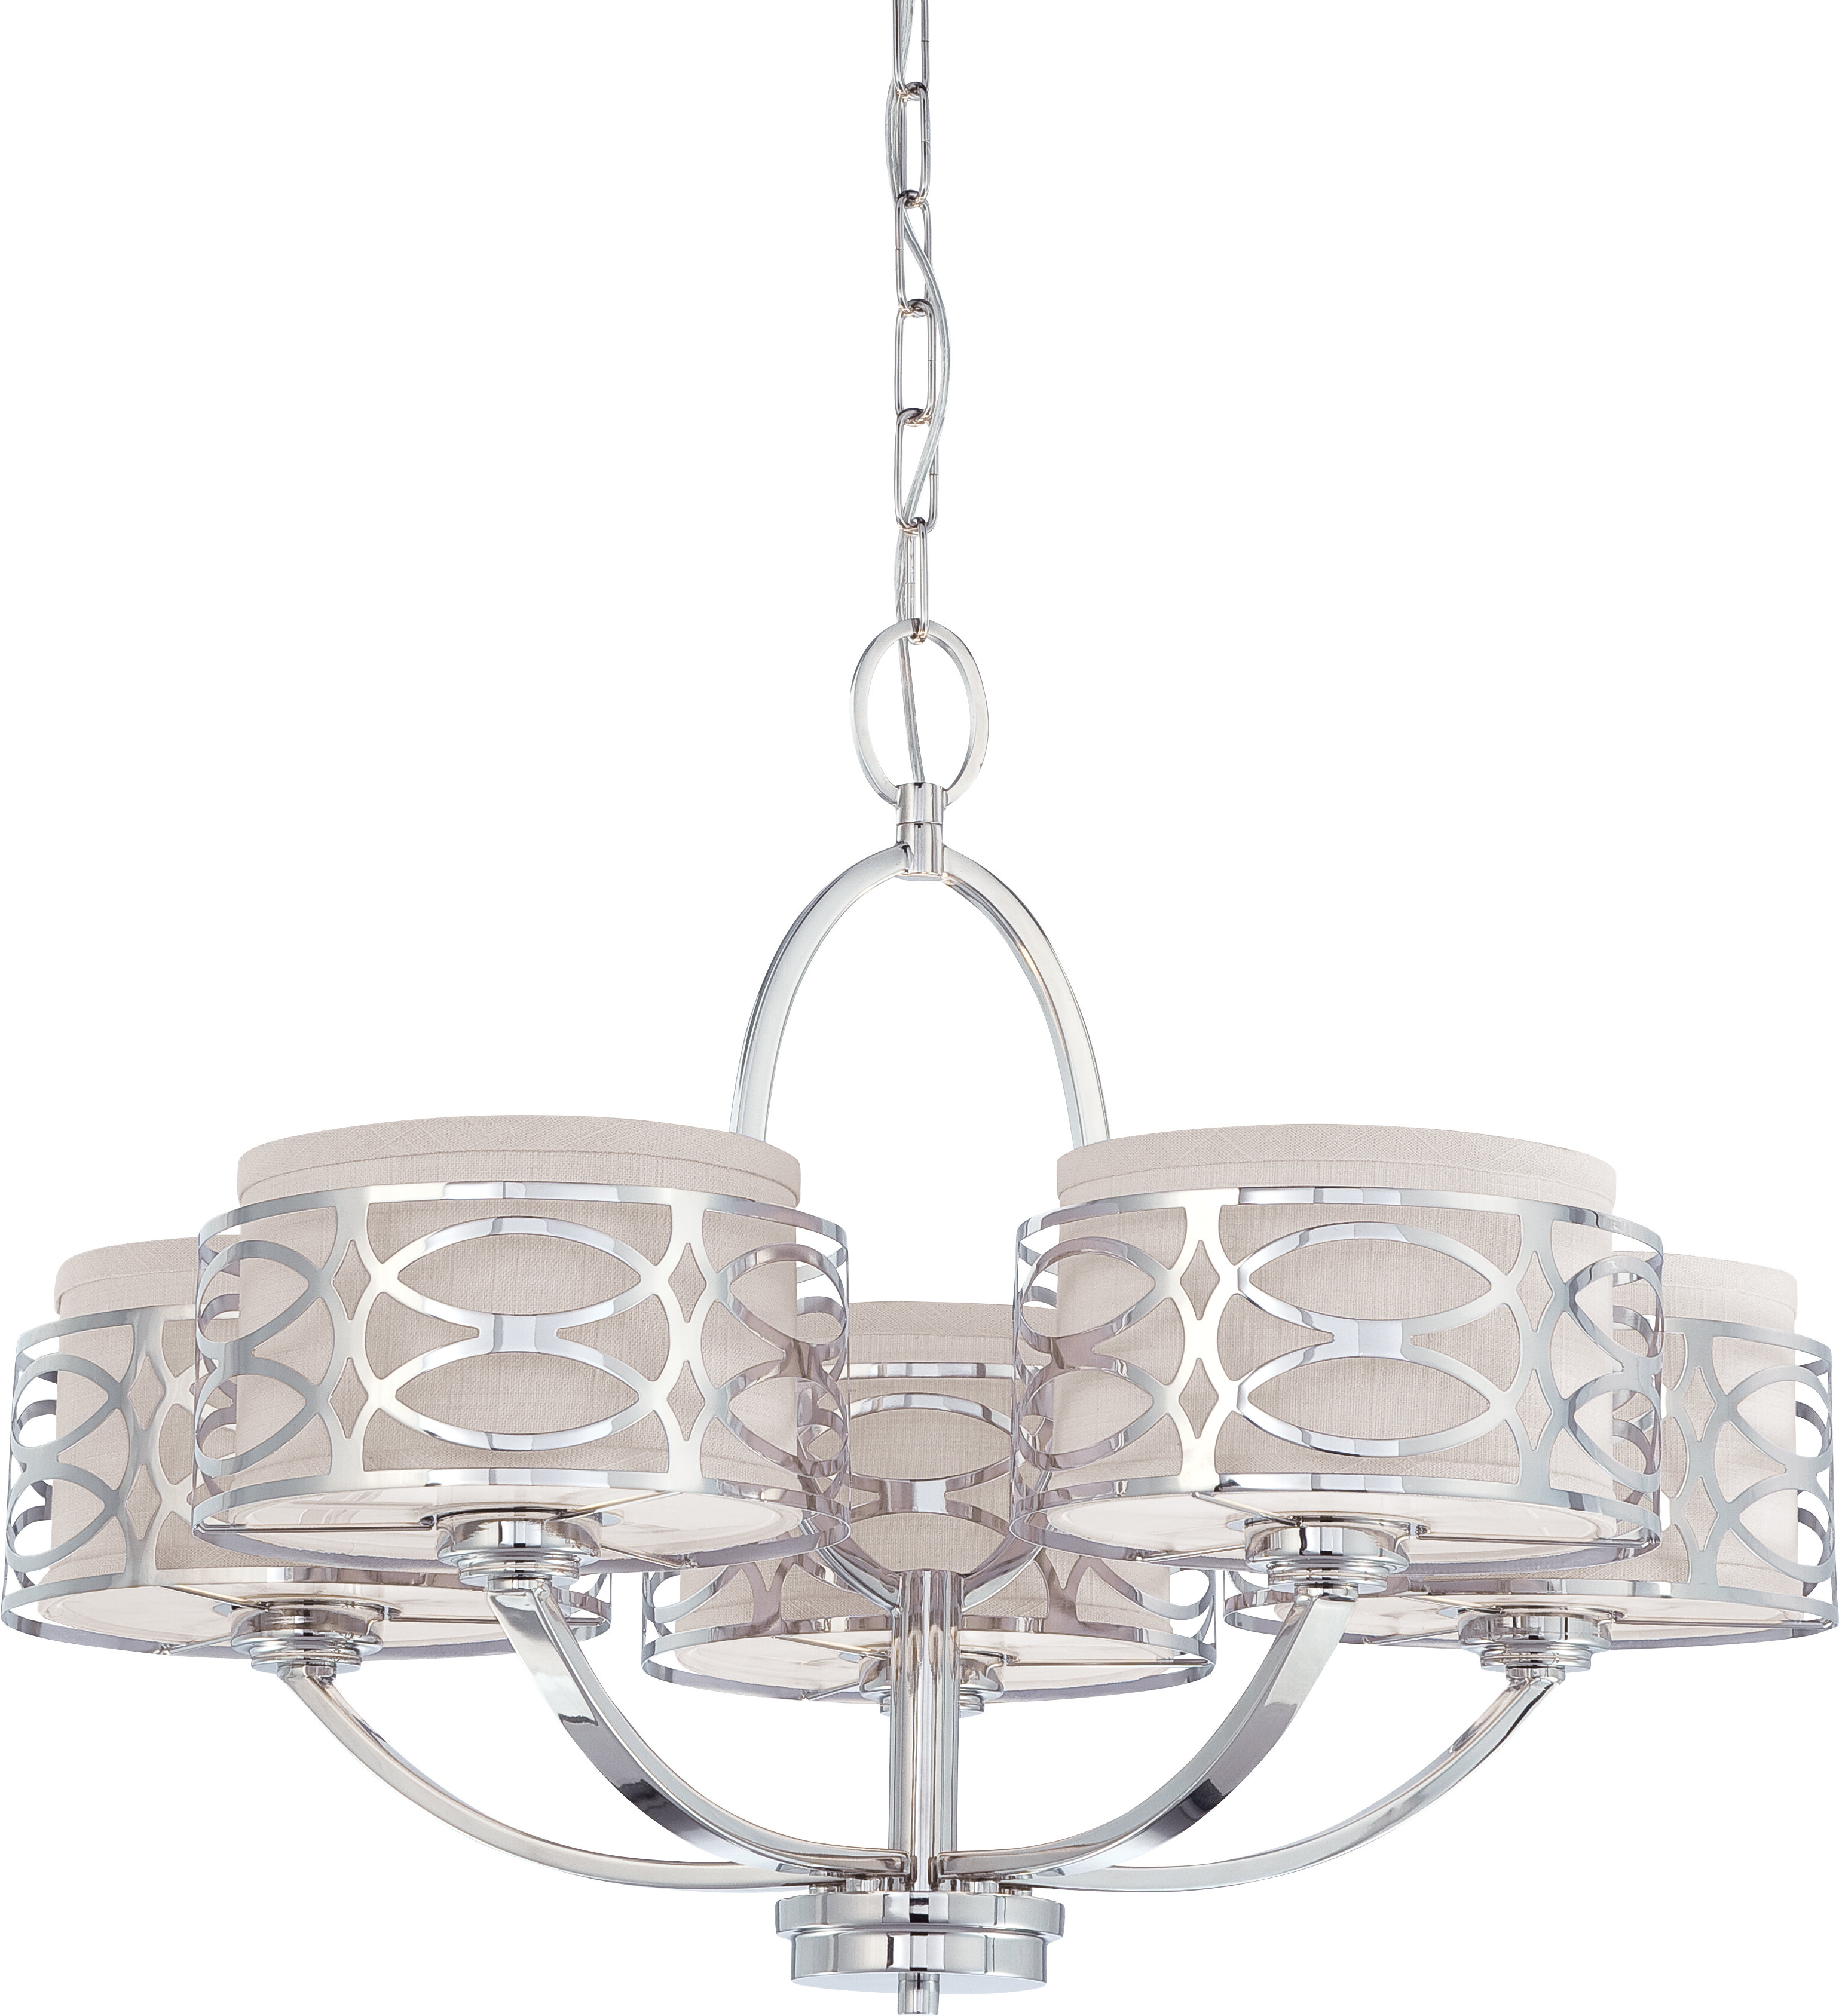 Willa Arlo Interiors Bela 5 Light Drum Chandelier Pertaining To Well Liked Abel 5 Light Drum Chandeliers (View 20 of 20)